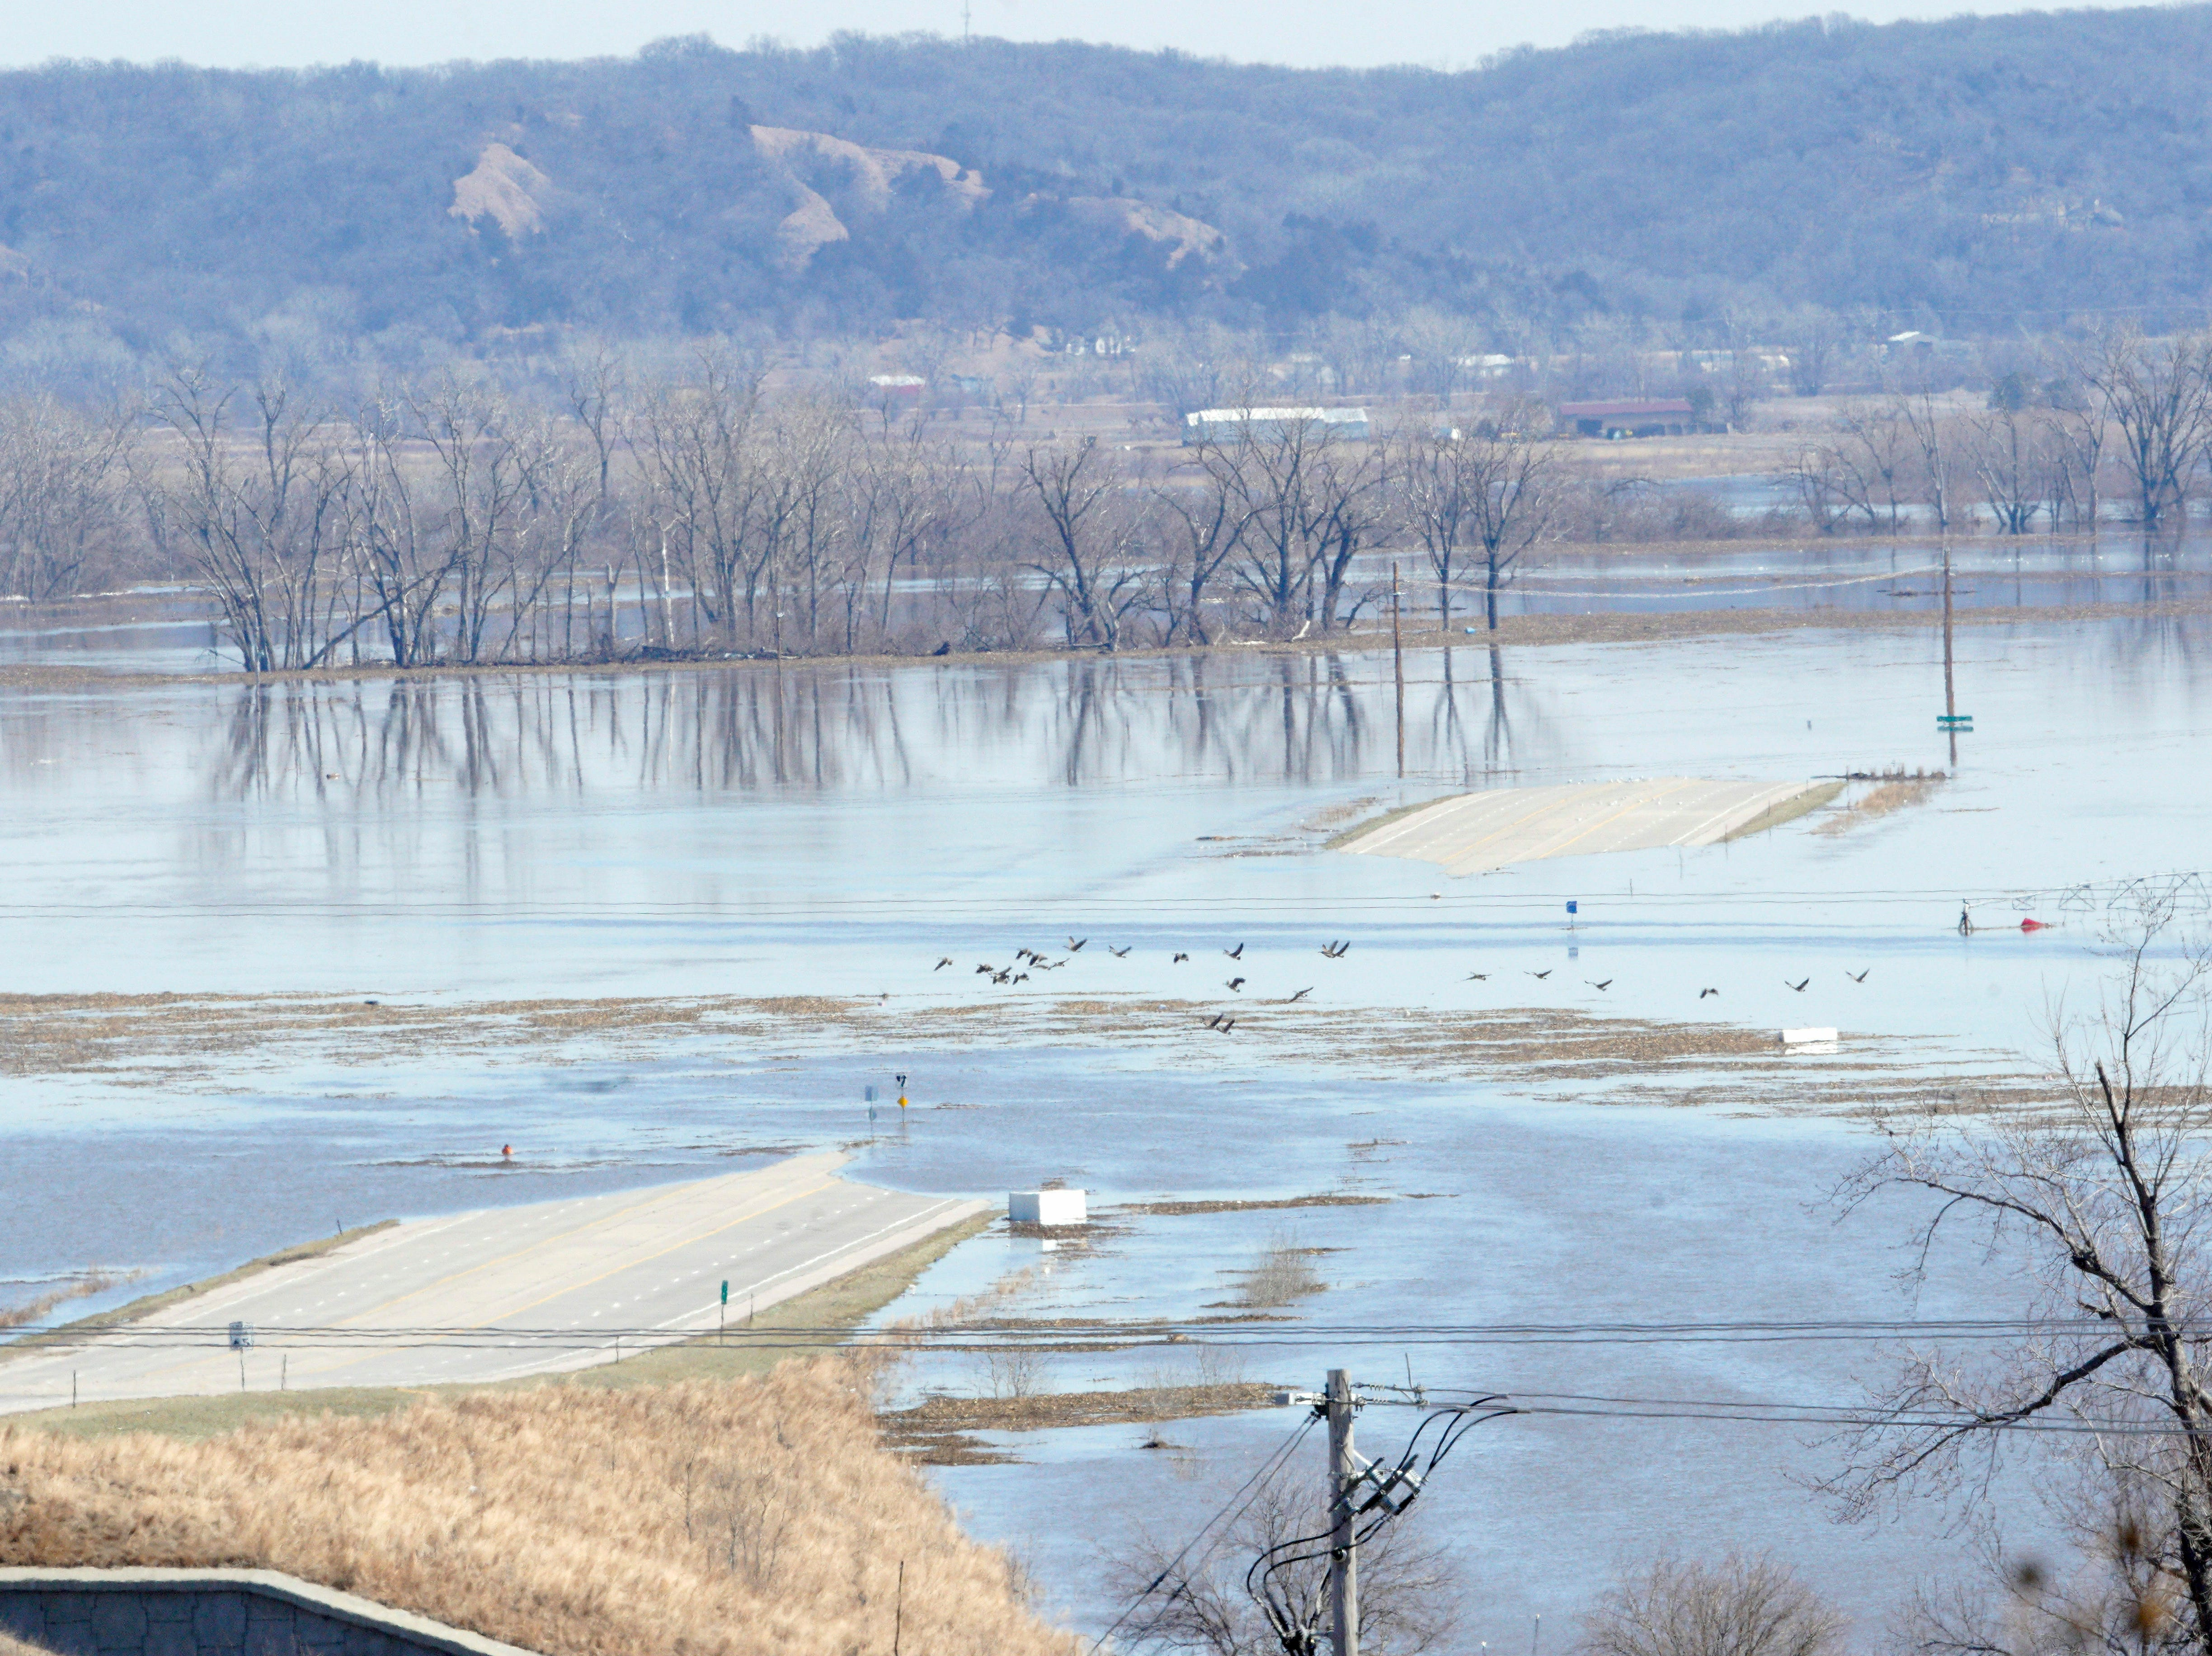 Geese fly above highway 34 near Platteview, Neb., Saturday, March 16, 2019, as floodwaters from the Missouri River cover the highway and surrounding farmland. Thousands of people have been urged to evacuate along eastern Nebraska rivers as a massive late-winter storm has pushed streams and rivers out of their banks throughout the Midwest.